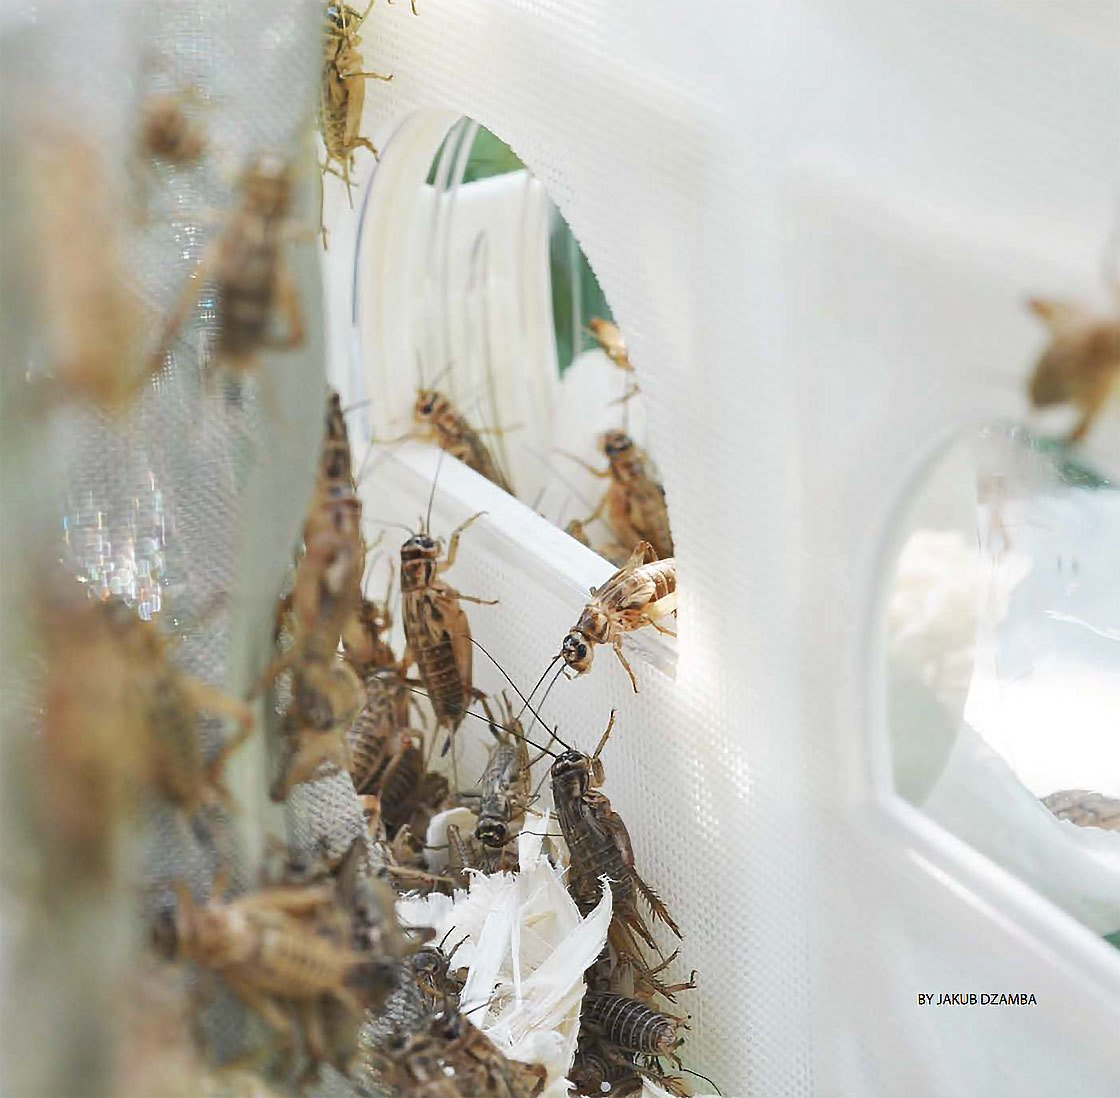 #BUGSfeed is marking World Edible Insect Day #WEID by looking at an insect city utopia: @kub_ohh's cricket reactors https://t.co/7jelIDJIQY https://t.co/ntHKNCrGzU